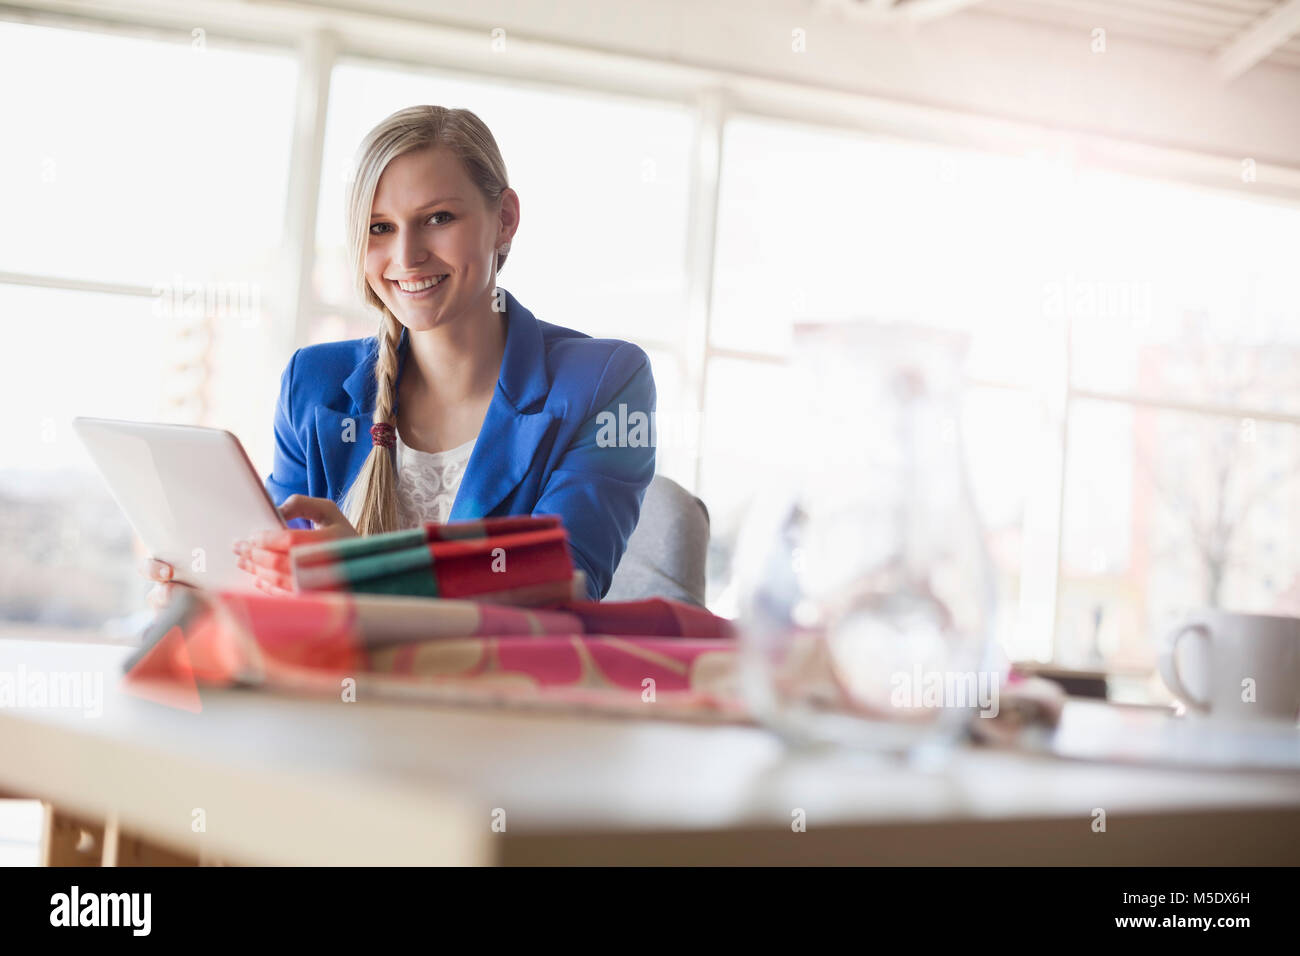 Portrait of confident young businesswoman using digital tablet at desk in creative office - Stock Image